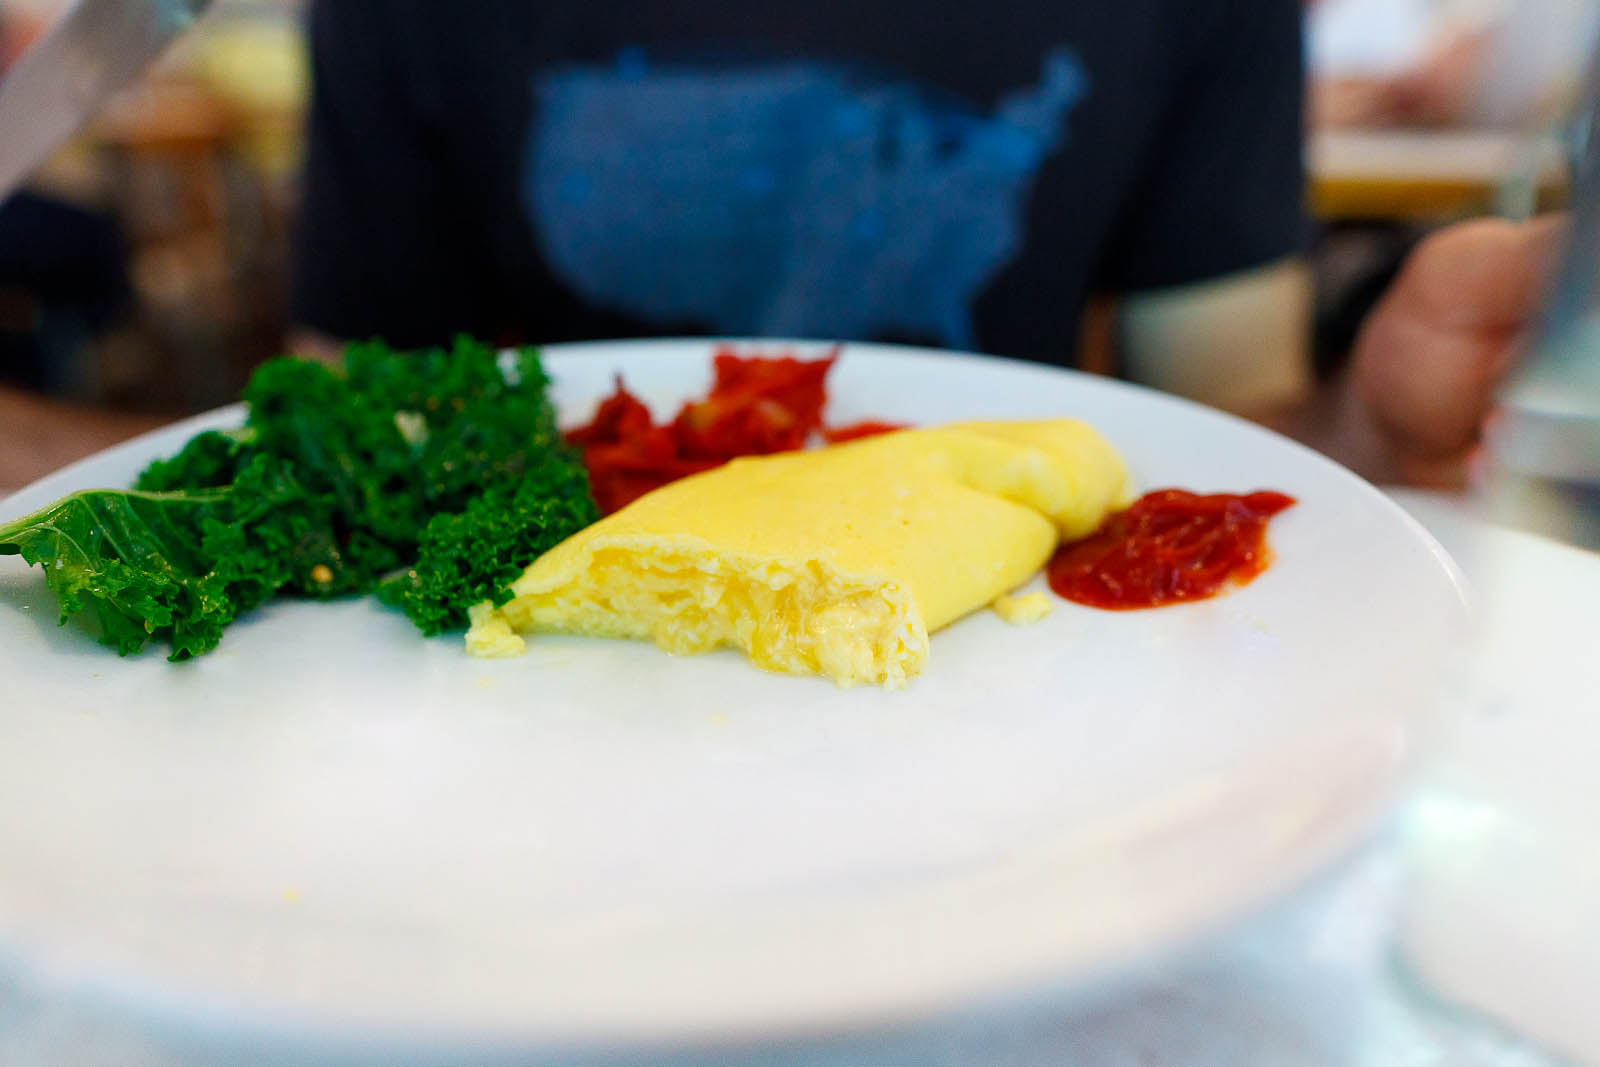 Grafton cheddar omelette with broiled tomatoes ($10)